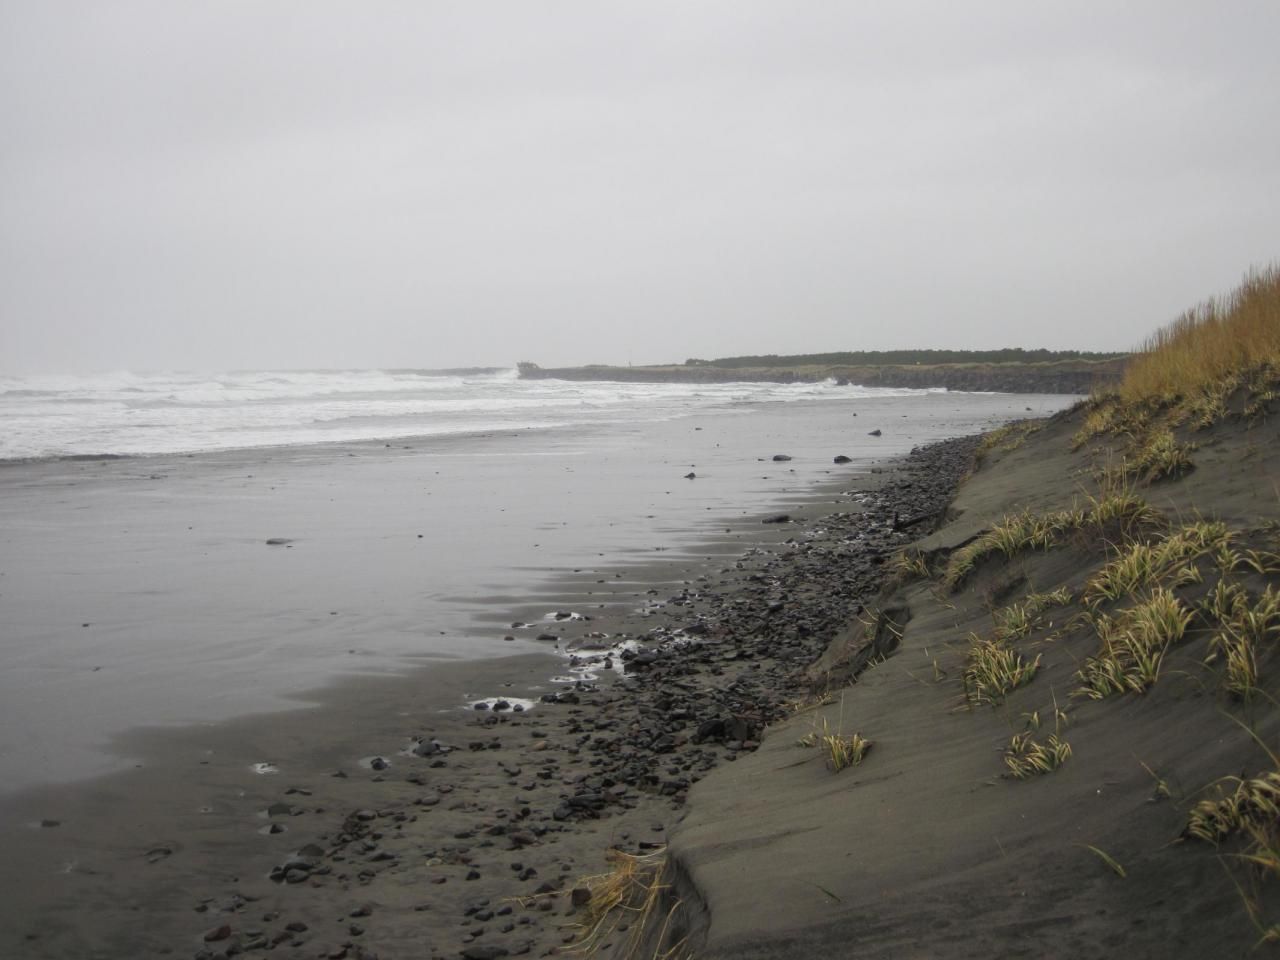 Looking north toward So. Columbia River Jetty.